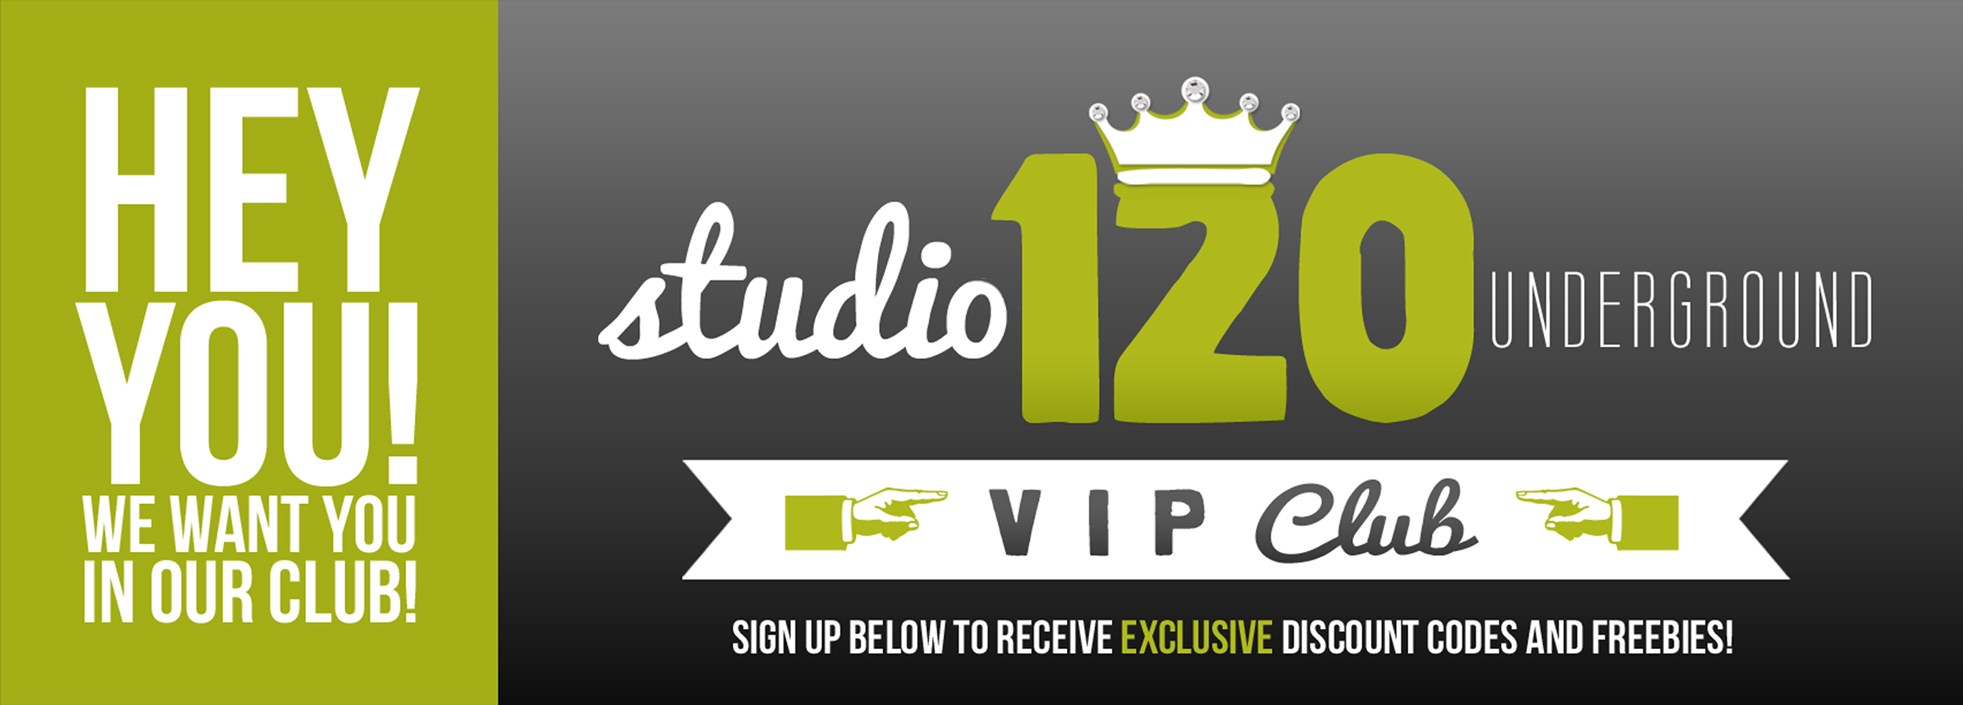 website-coming-soon-graphic-7-vip-club